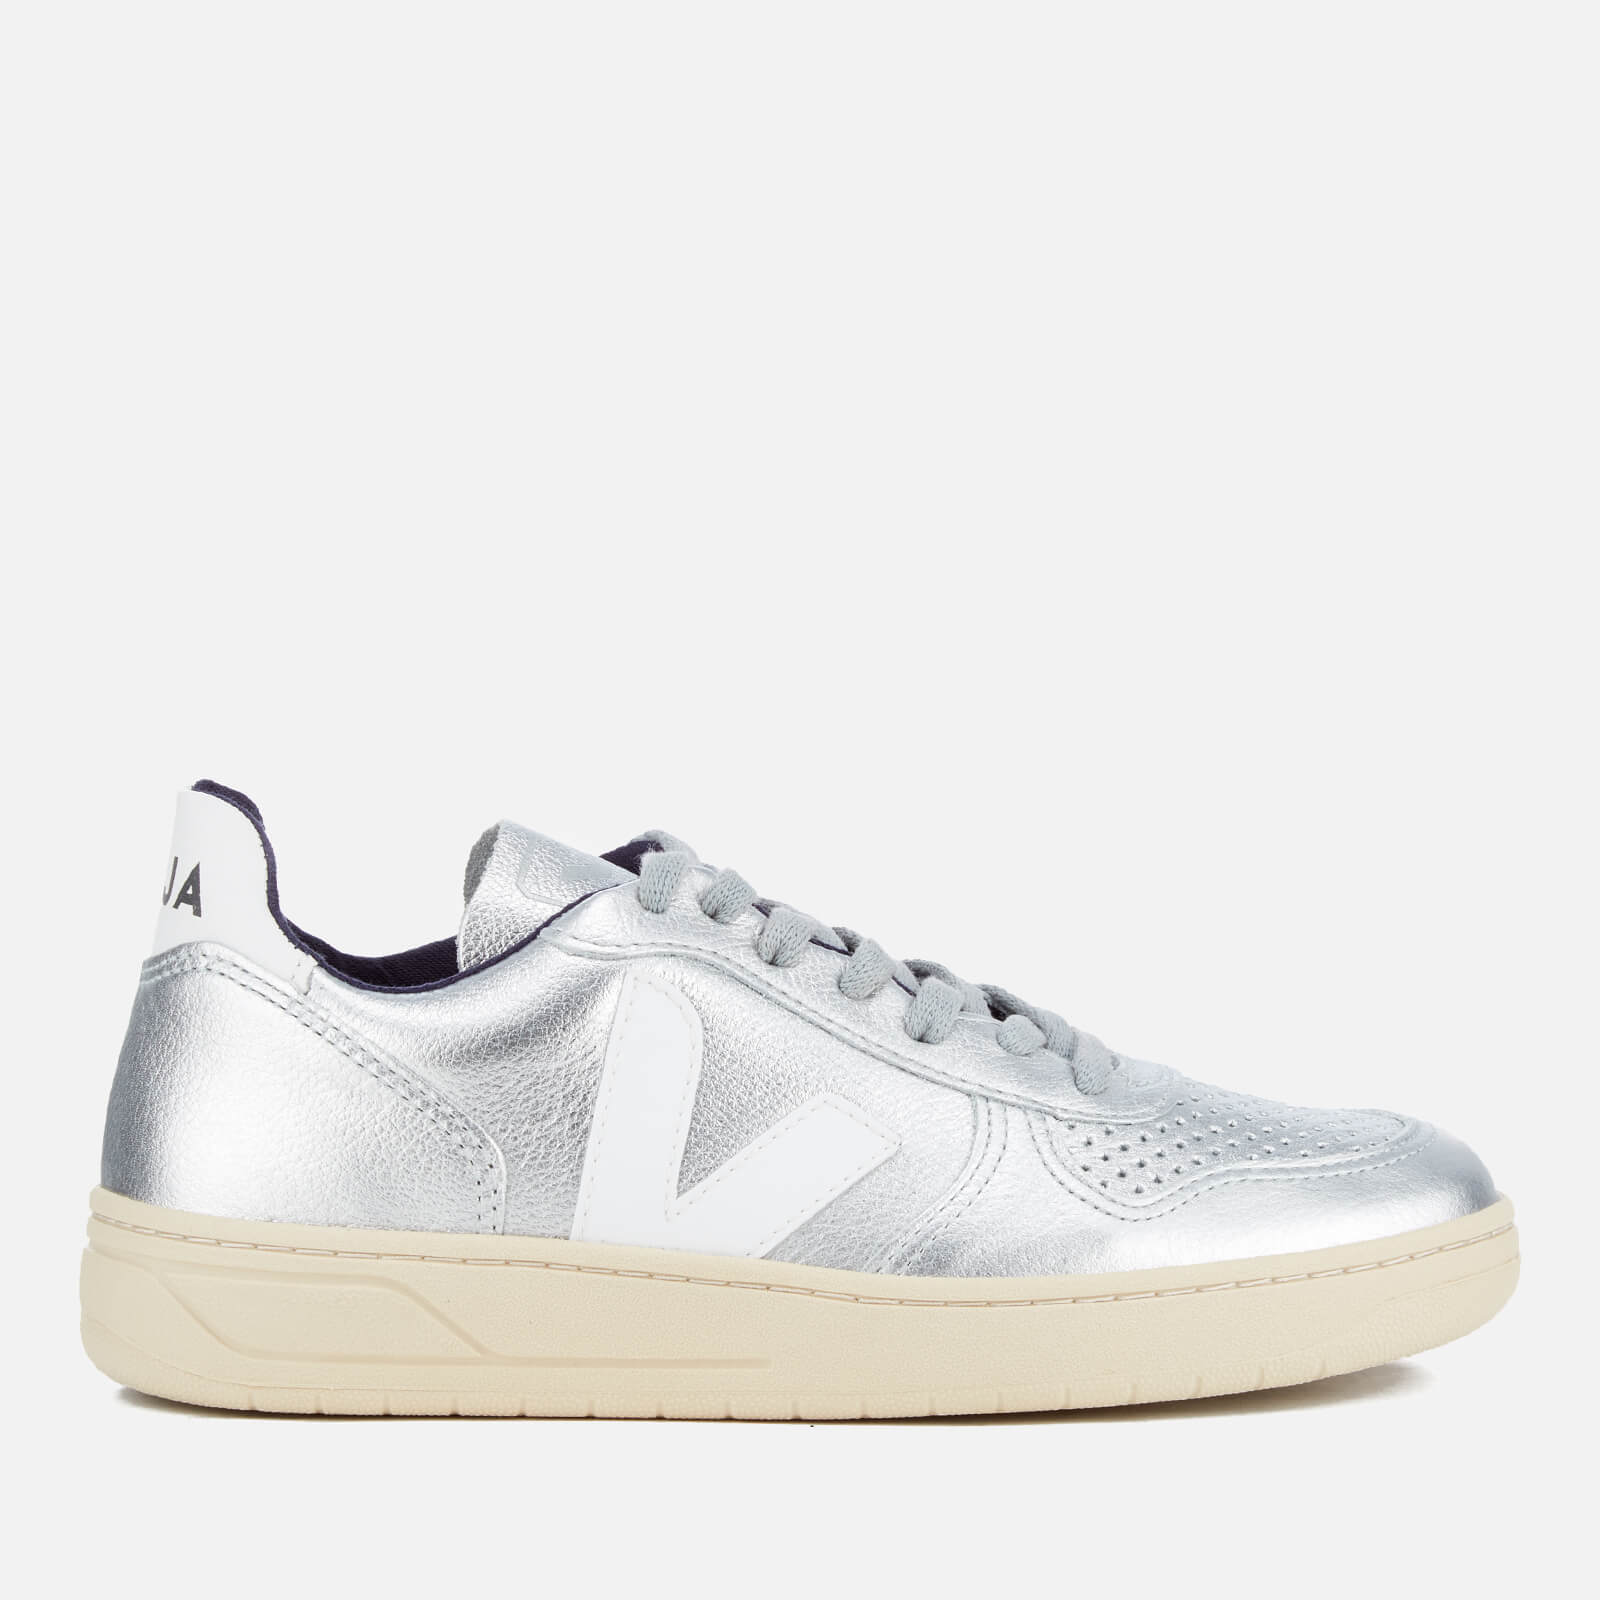 0df4ba2a2833e0 Veja Women s V-10 Leather Trainers - Silver - Free UK Delivery over £50